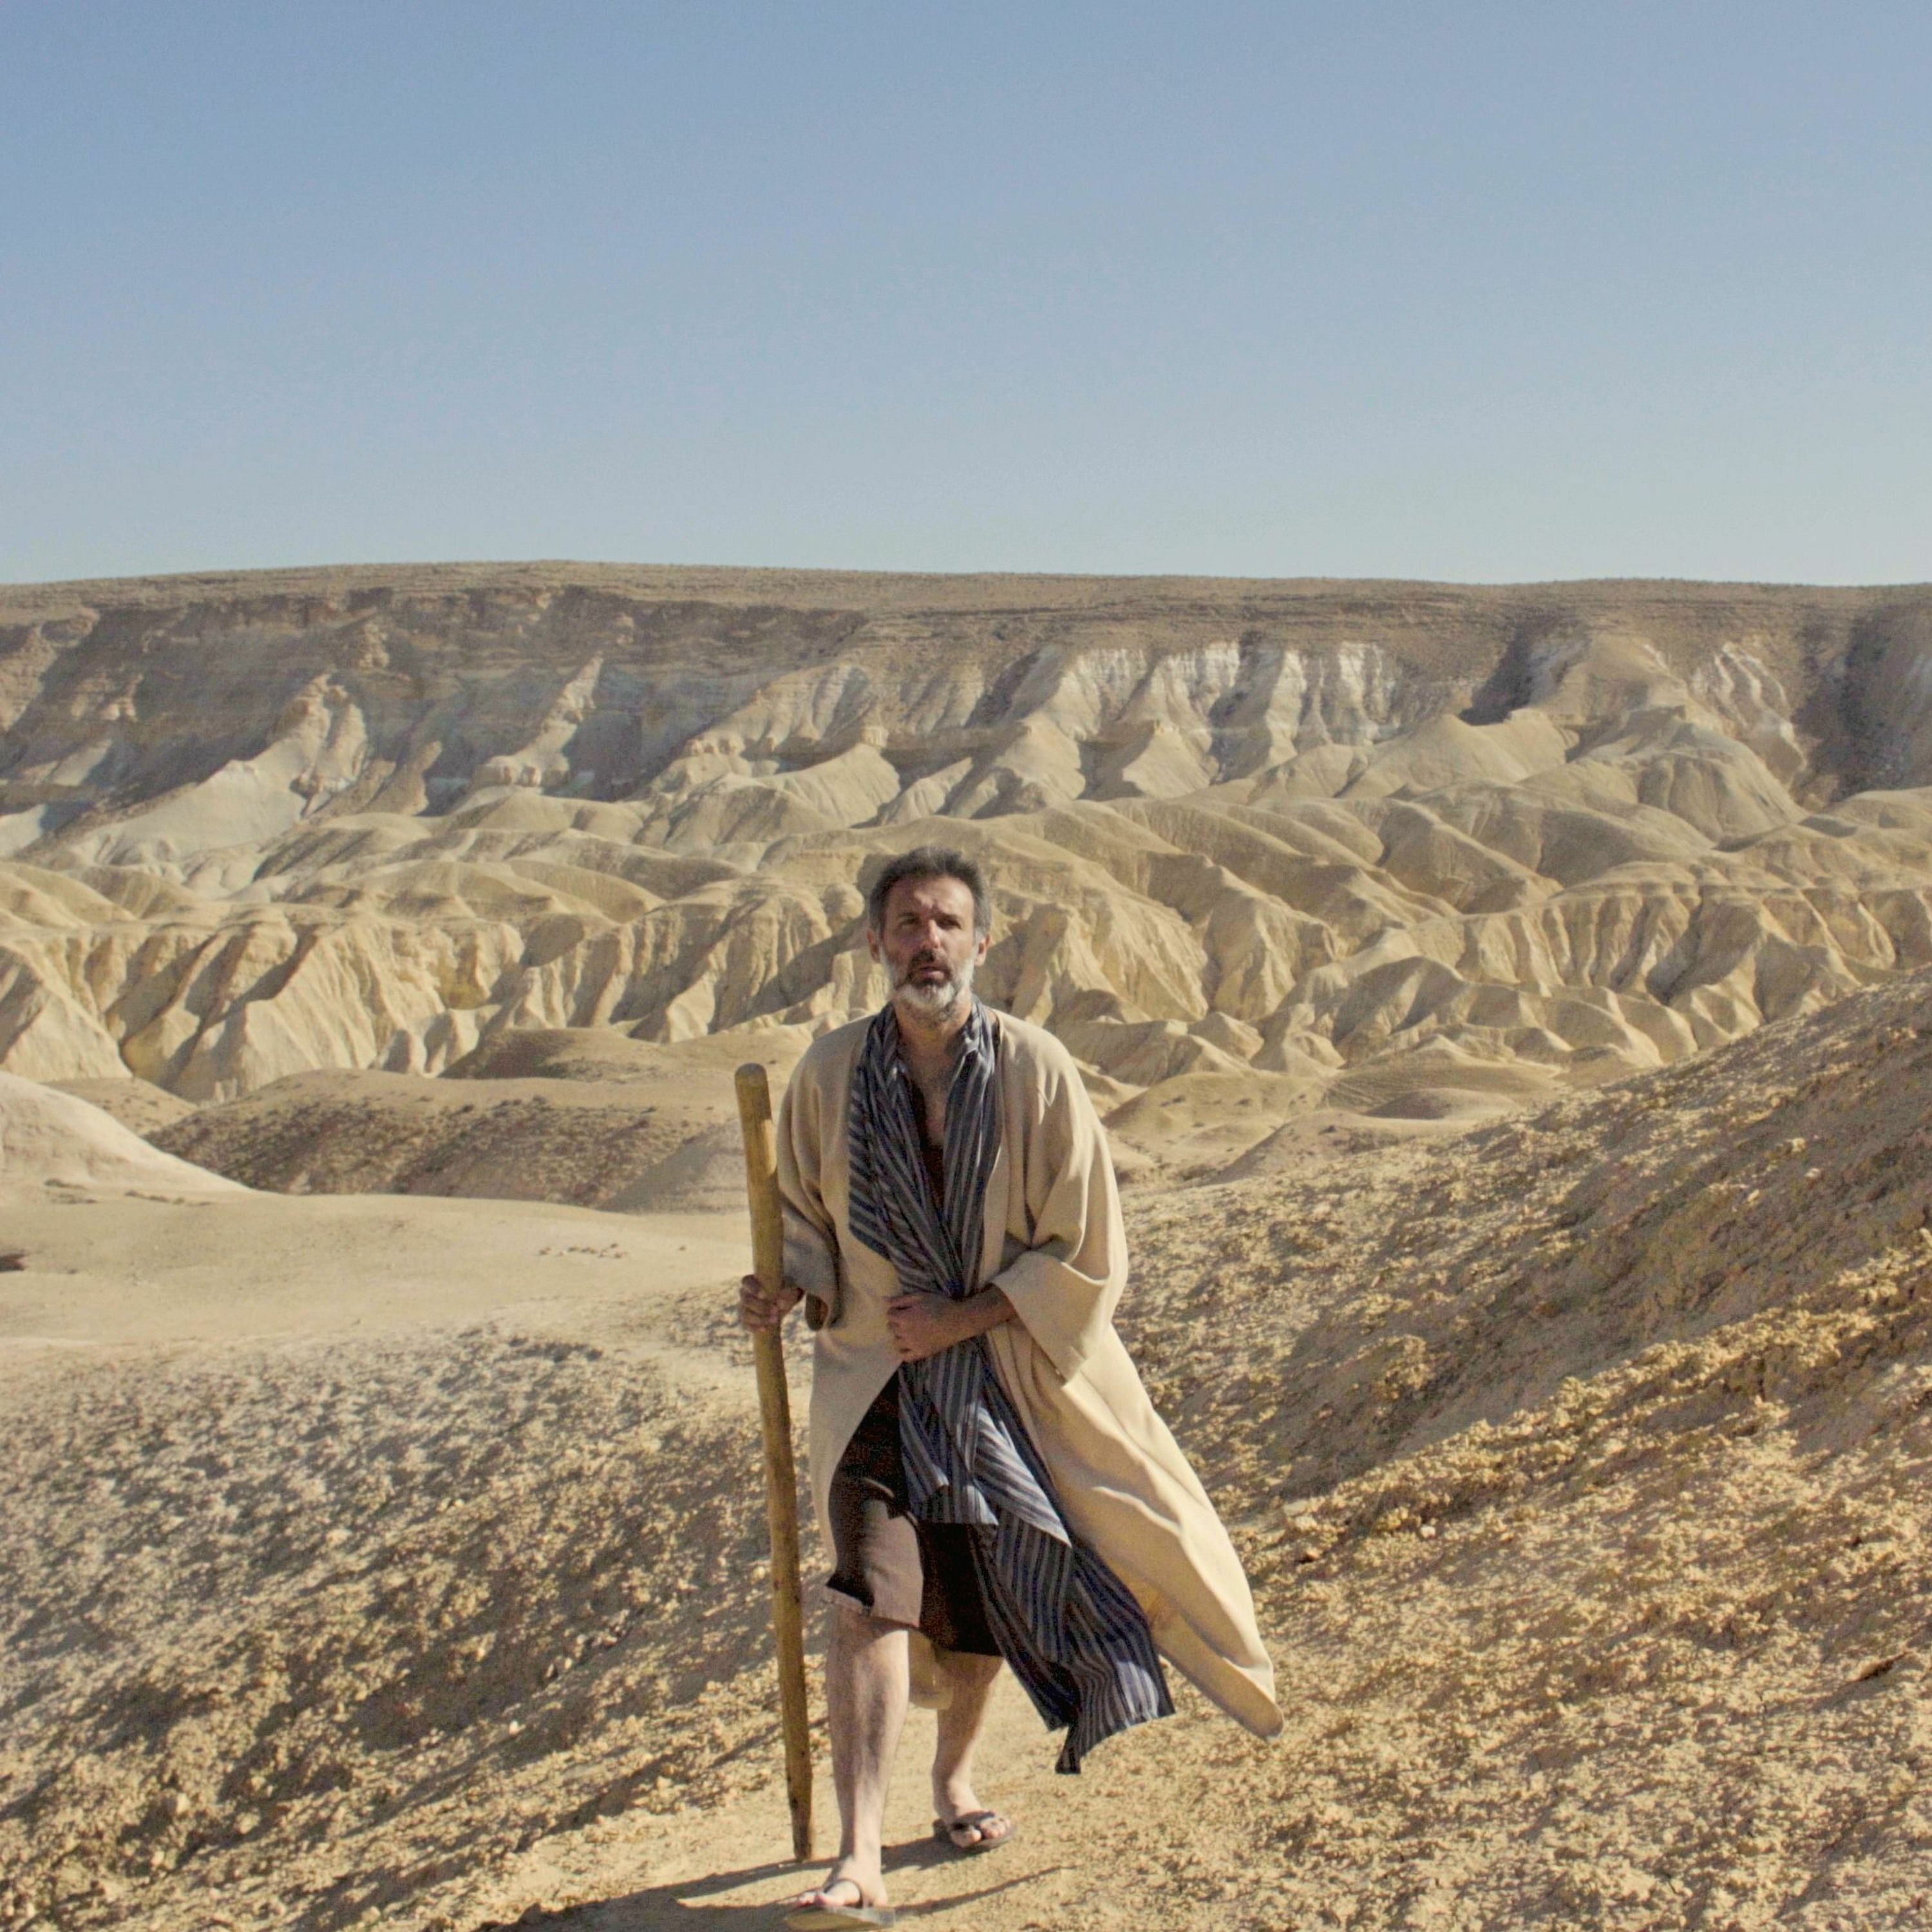 Documentary director Igal Hecht takes the Bible into 'The Wilderness' in new 10-part series